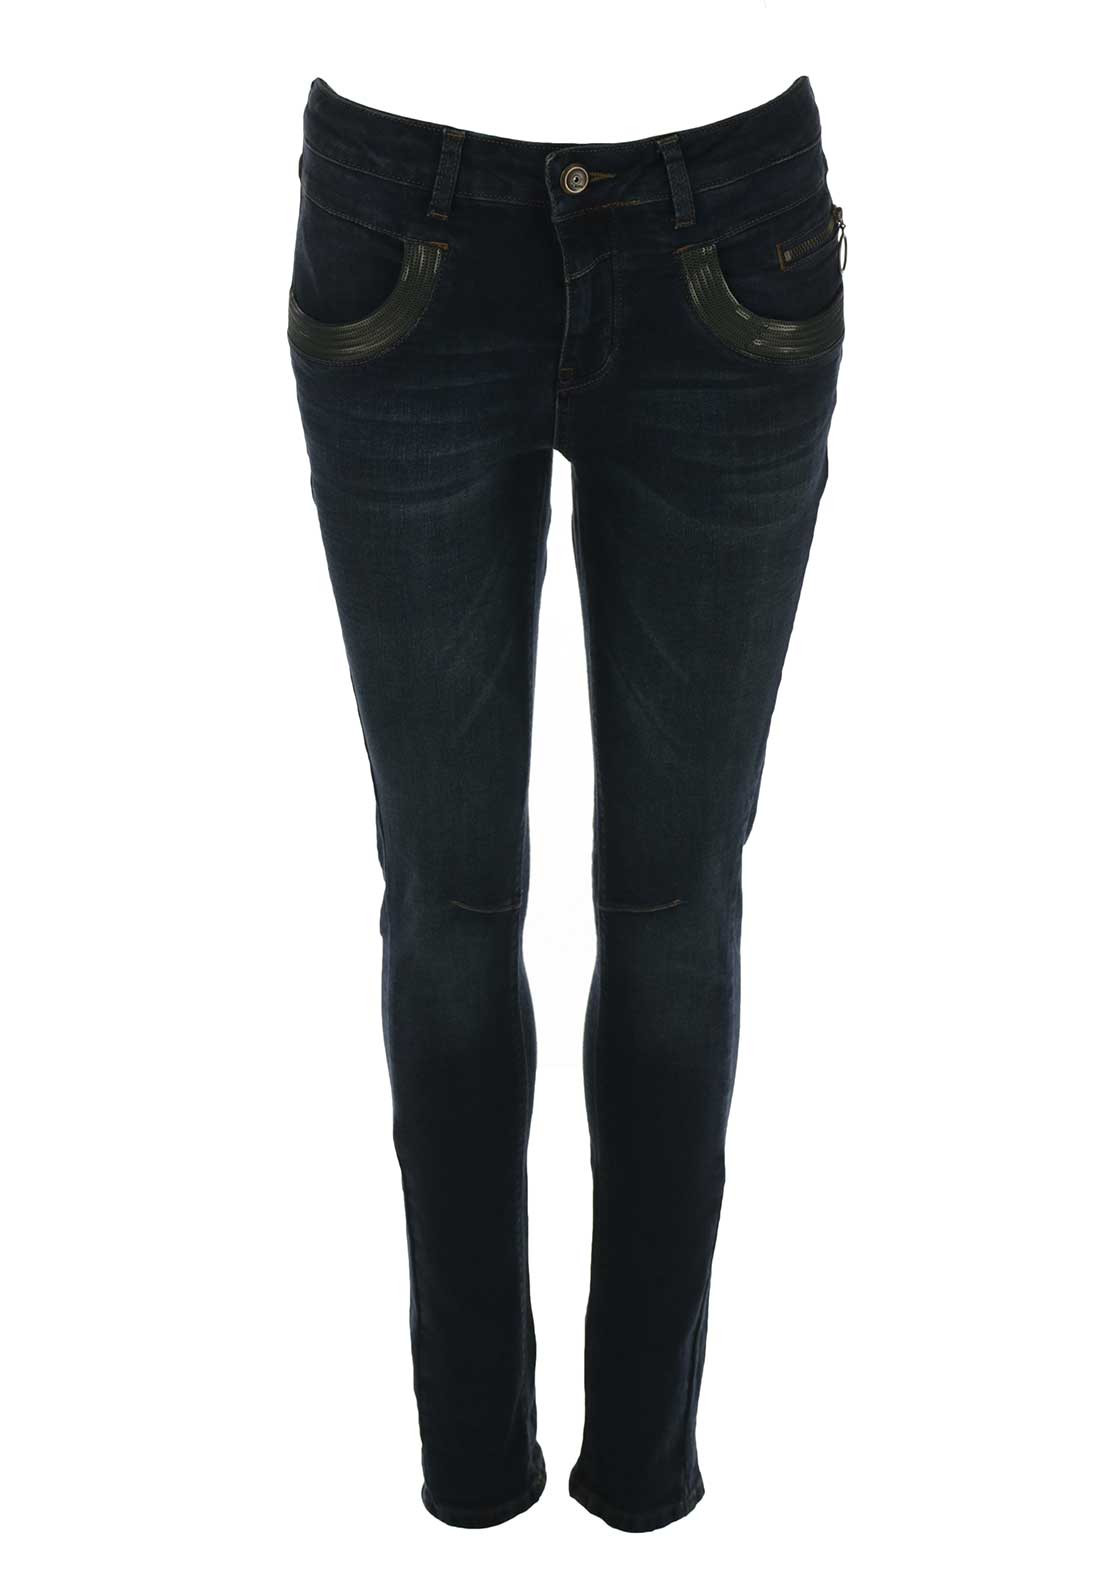 Mos Mosh Naomi Glam Slim Leg Jeans, Dark Blue Denim